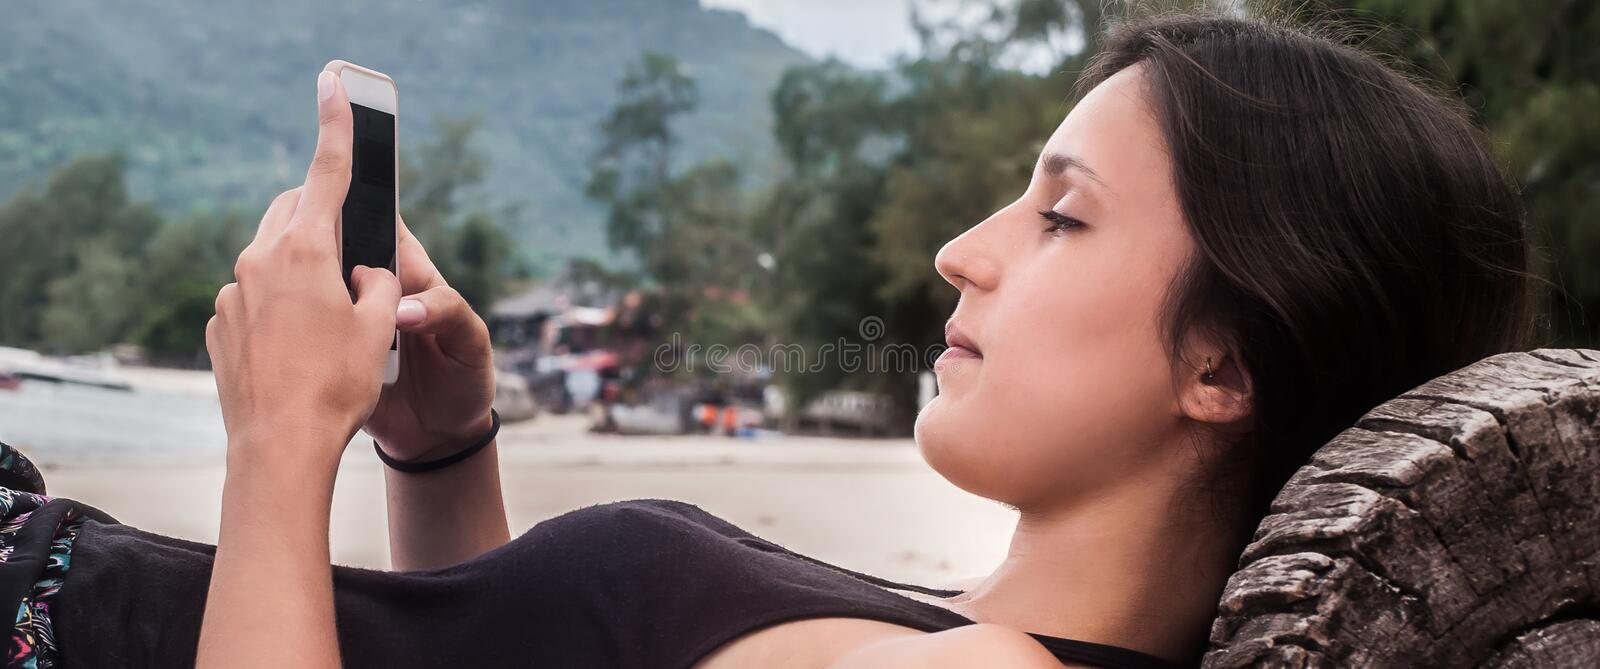 Young woman with smartphone relaxing on tropical beach. Young woman reading sms, texting on smartphone and relaxing on tropical beach royalty free stock image